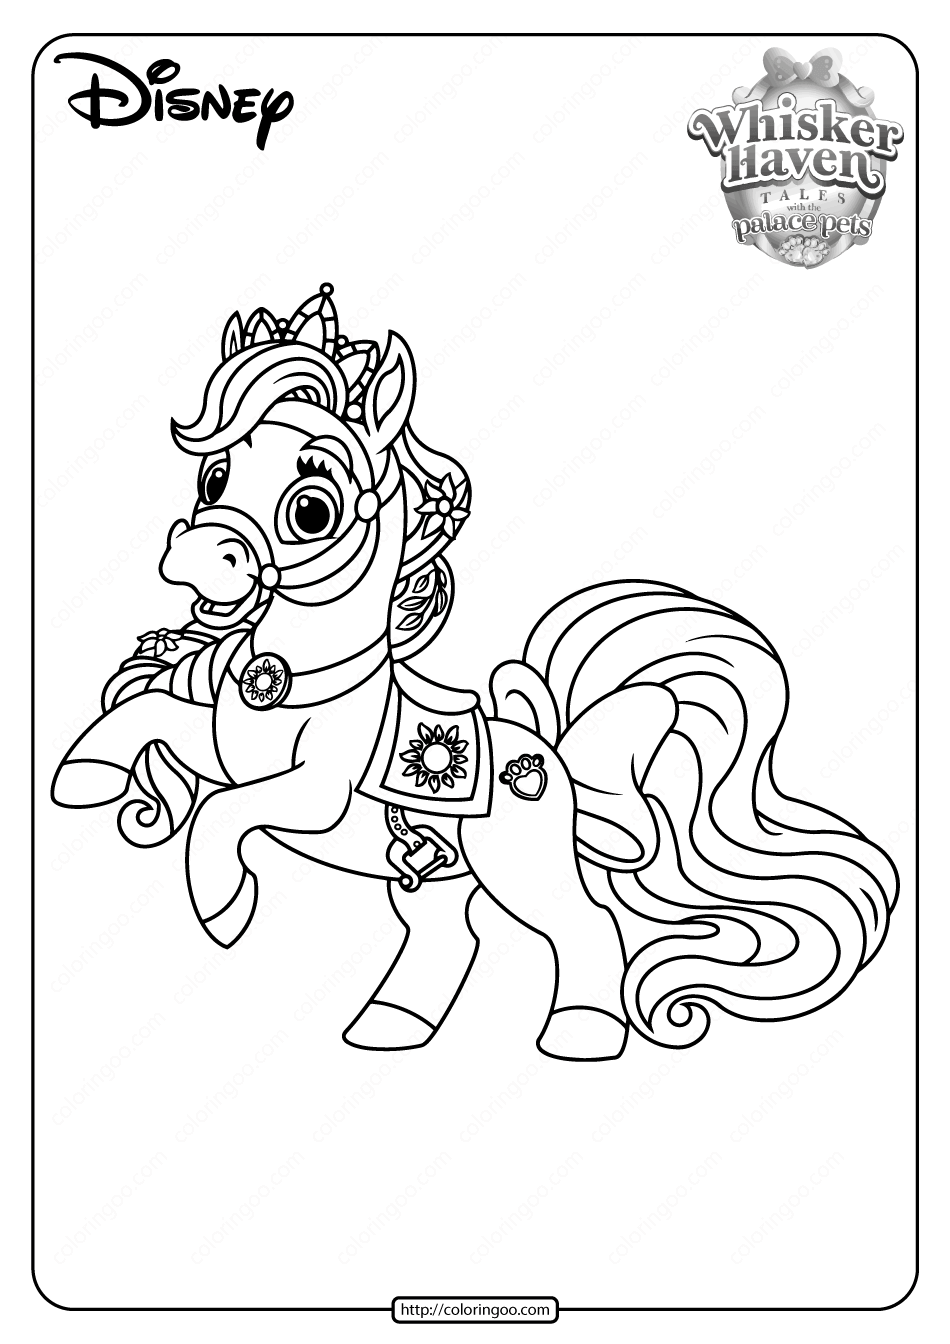 Printable Palace Pets Blondie PDF Coloring Pages